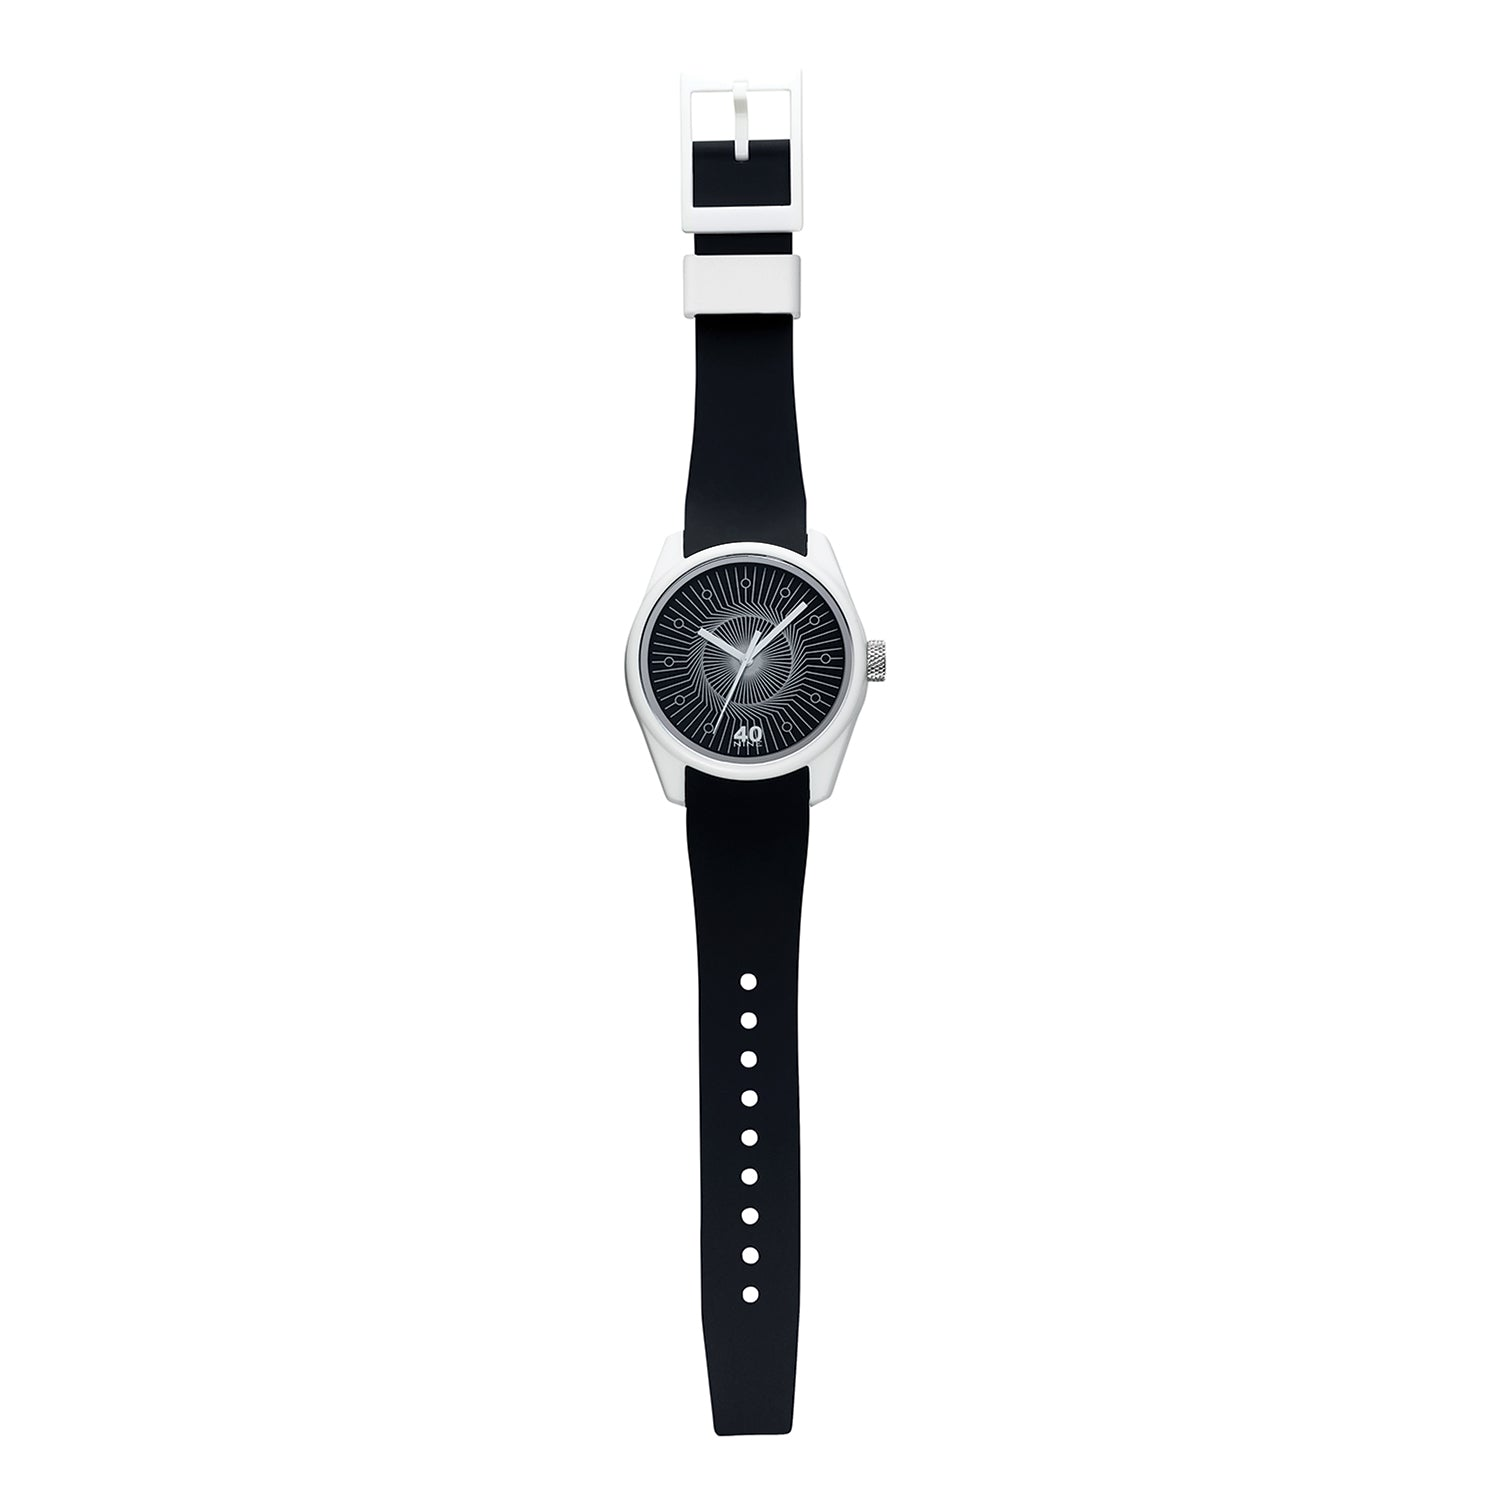 40N3.7BK 40NINE BEAT 43MM WATCH